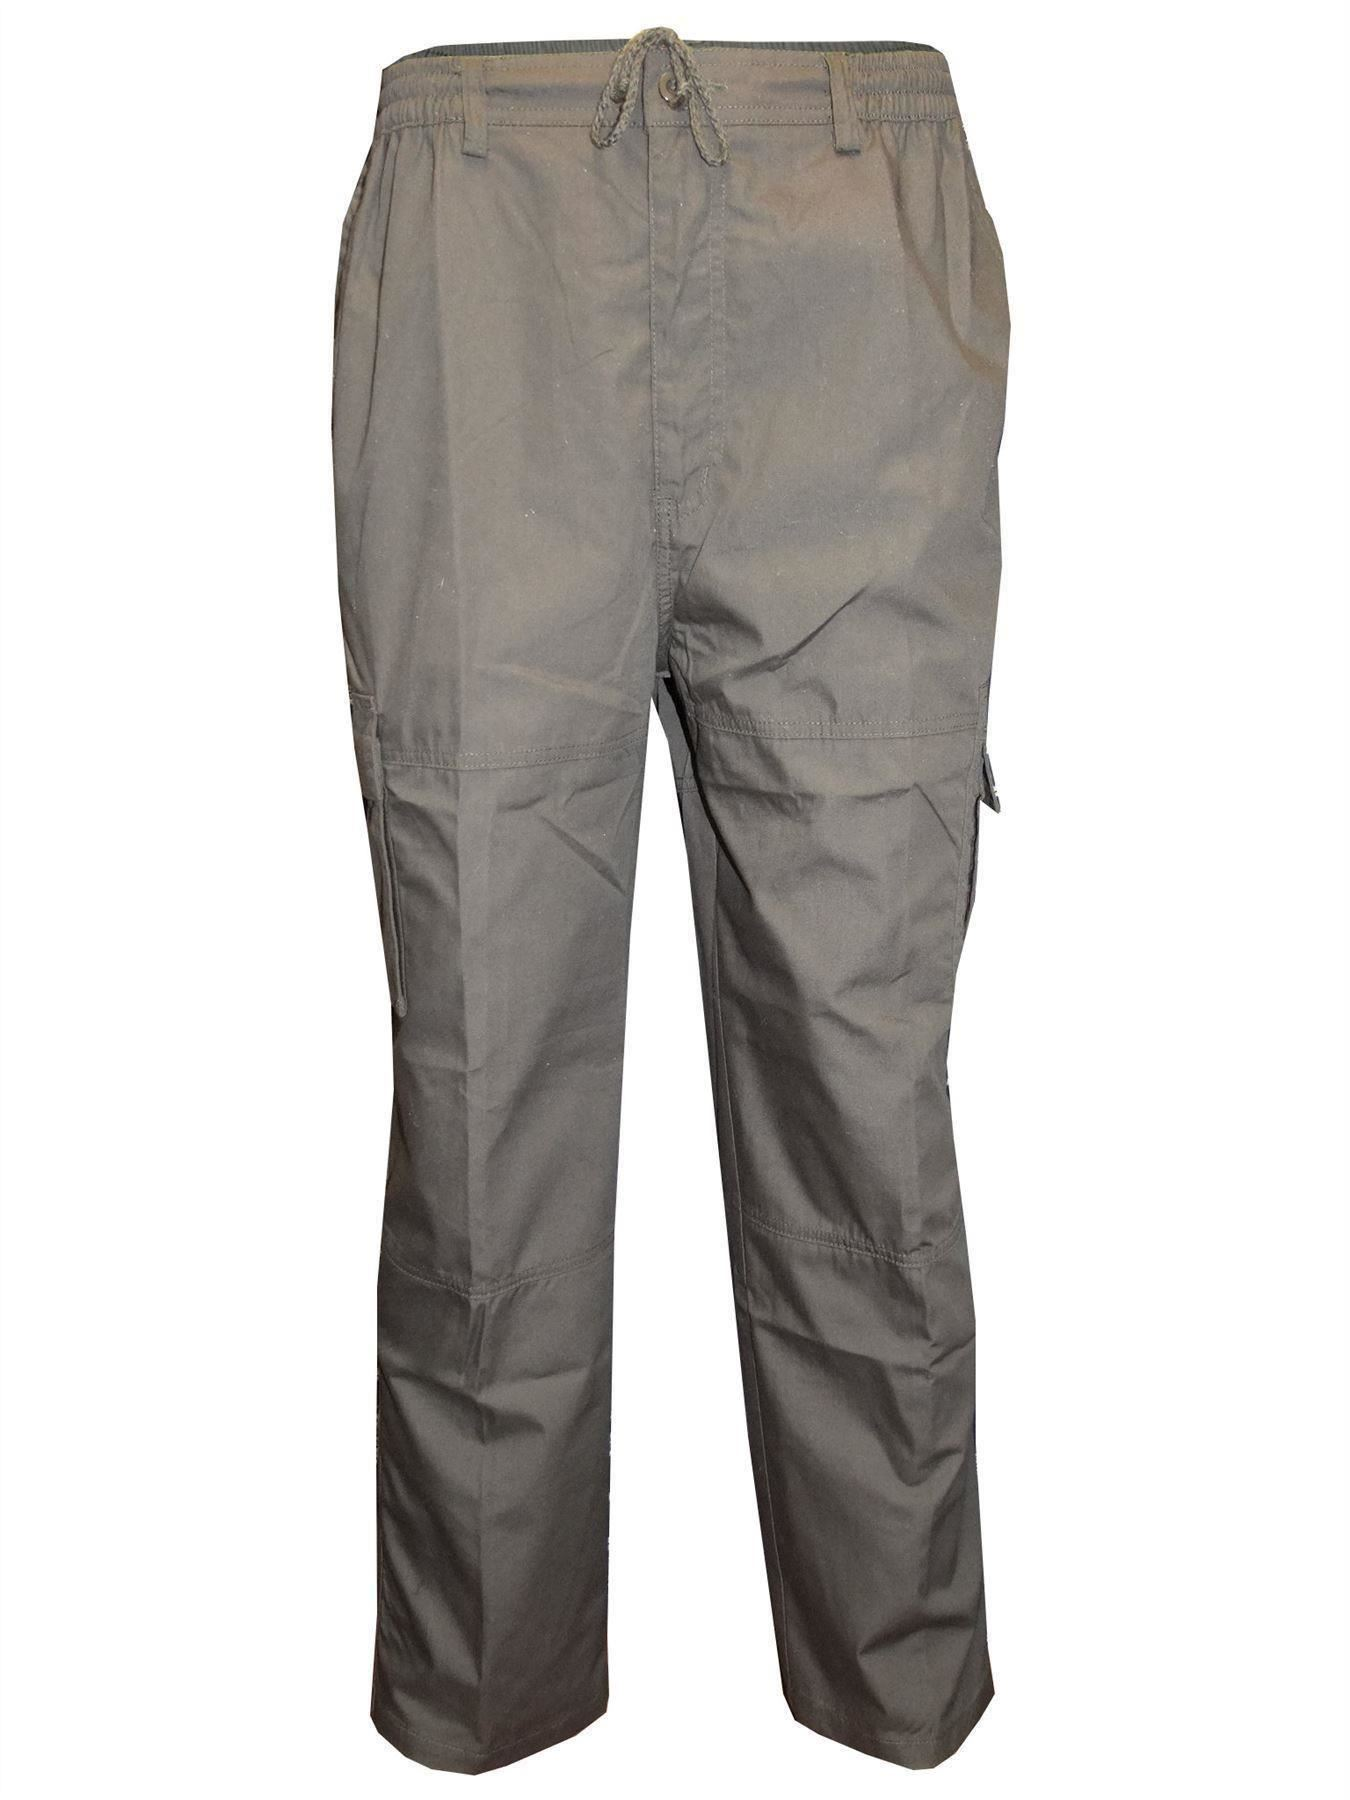 Men-Straight-Trousers-Cargo-Combat-Cotton-Elasticated-Zip-Fly-Casual-Pants-M-3XL thumbnail 9